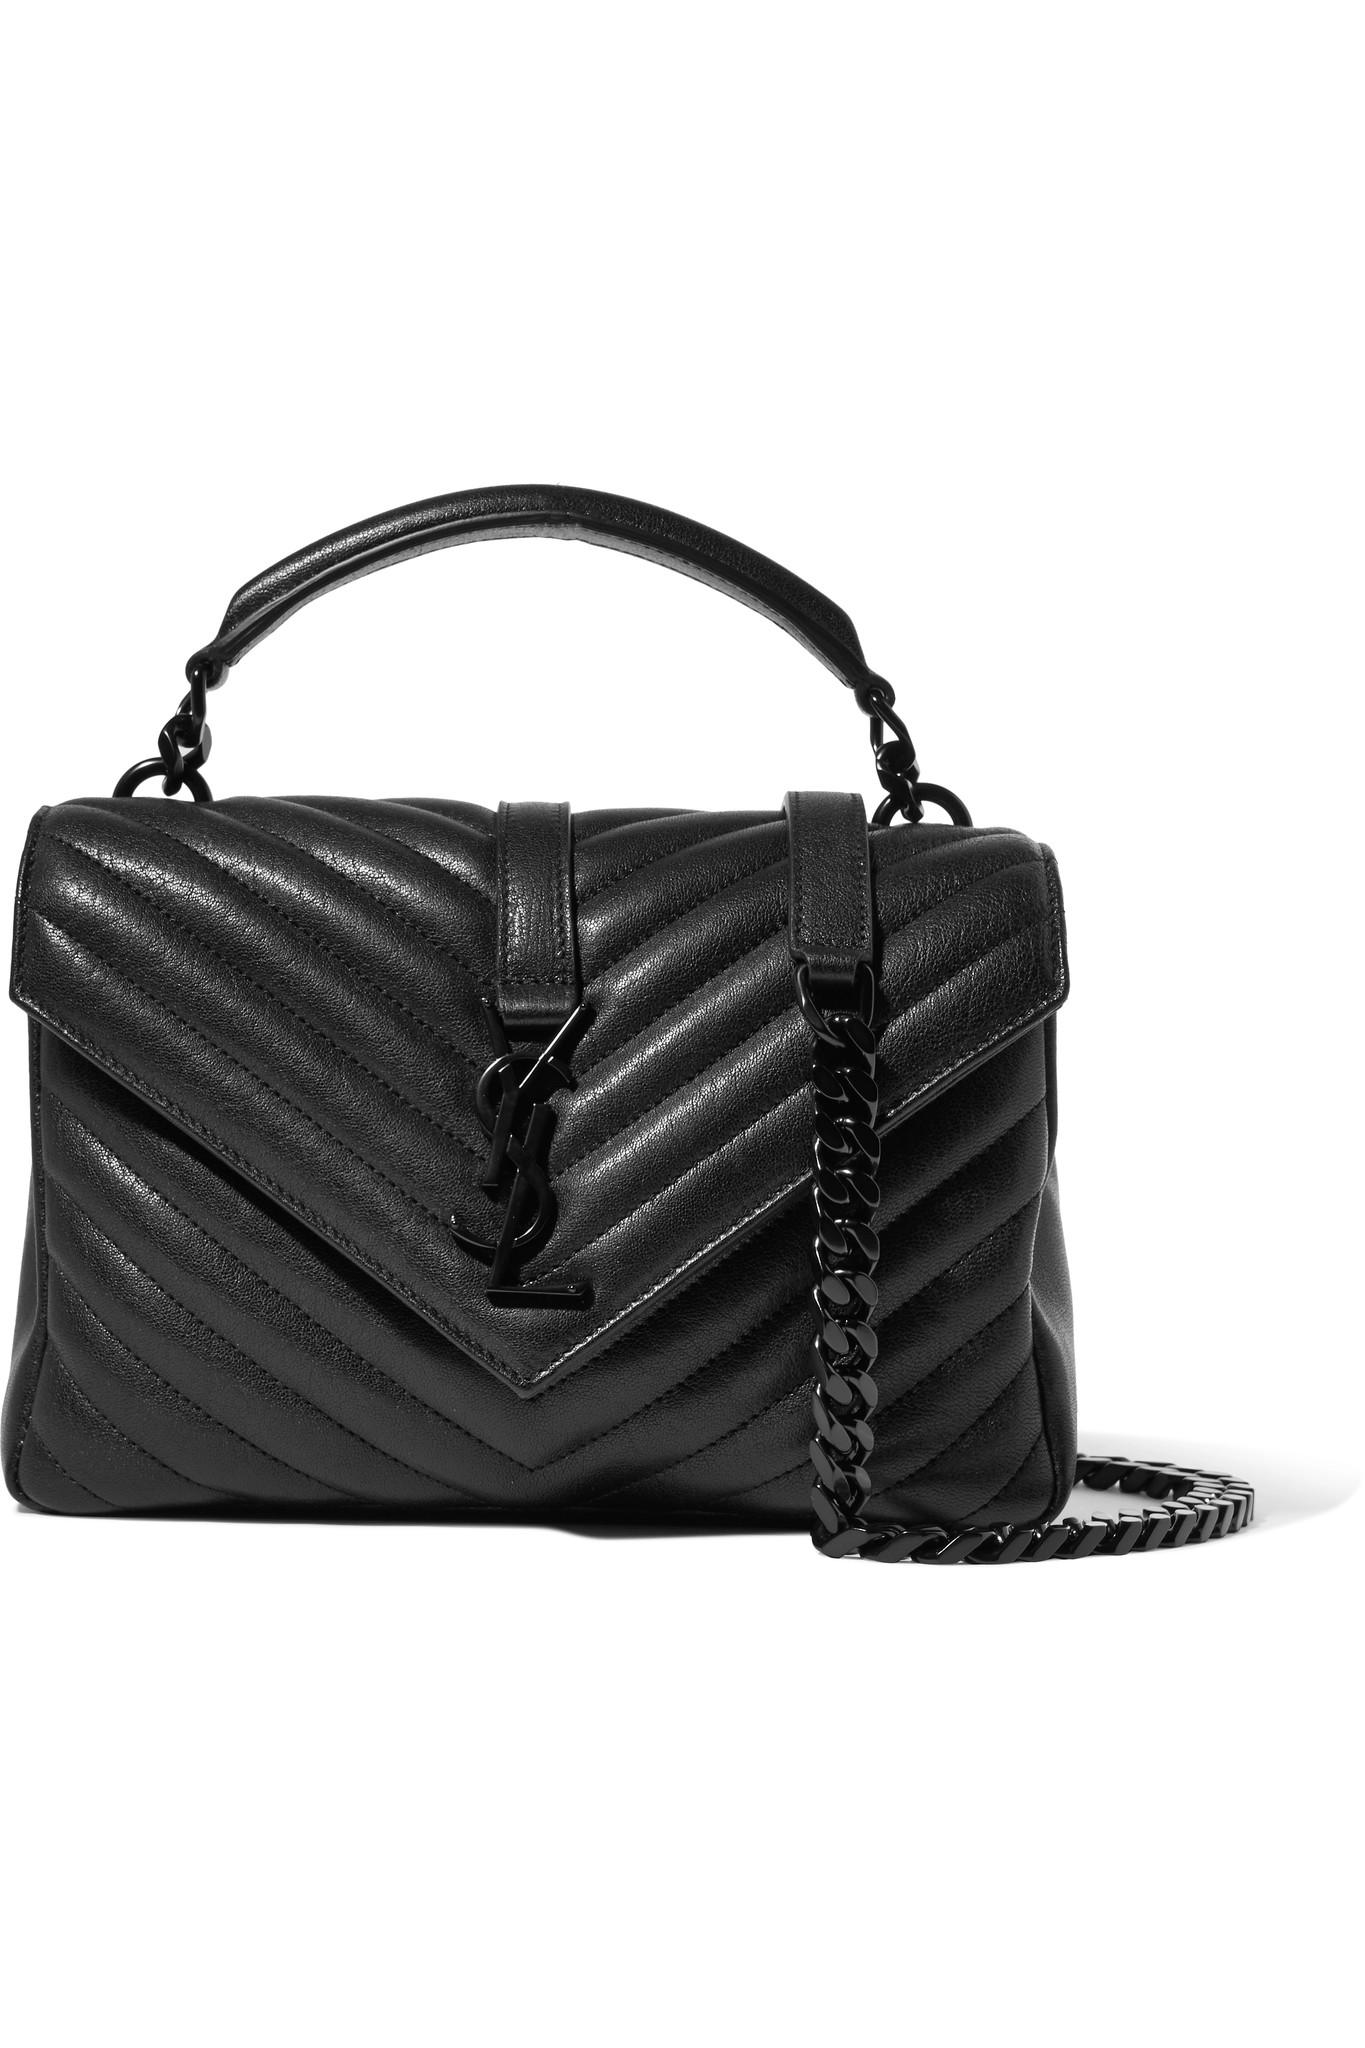 60f949c8d8 Saint Laurent. Women s Black College Medium Quilted Leather Shoulder Bag